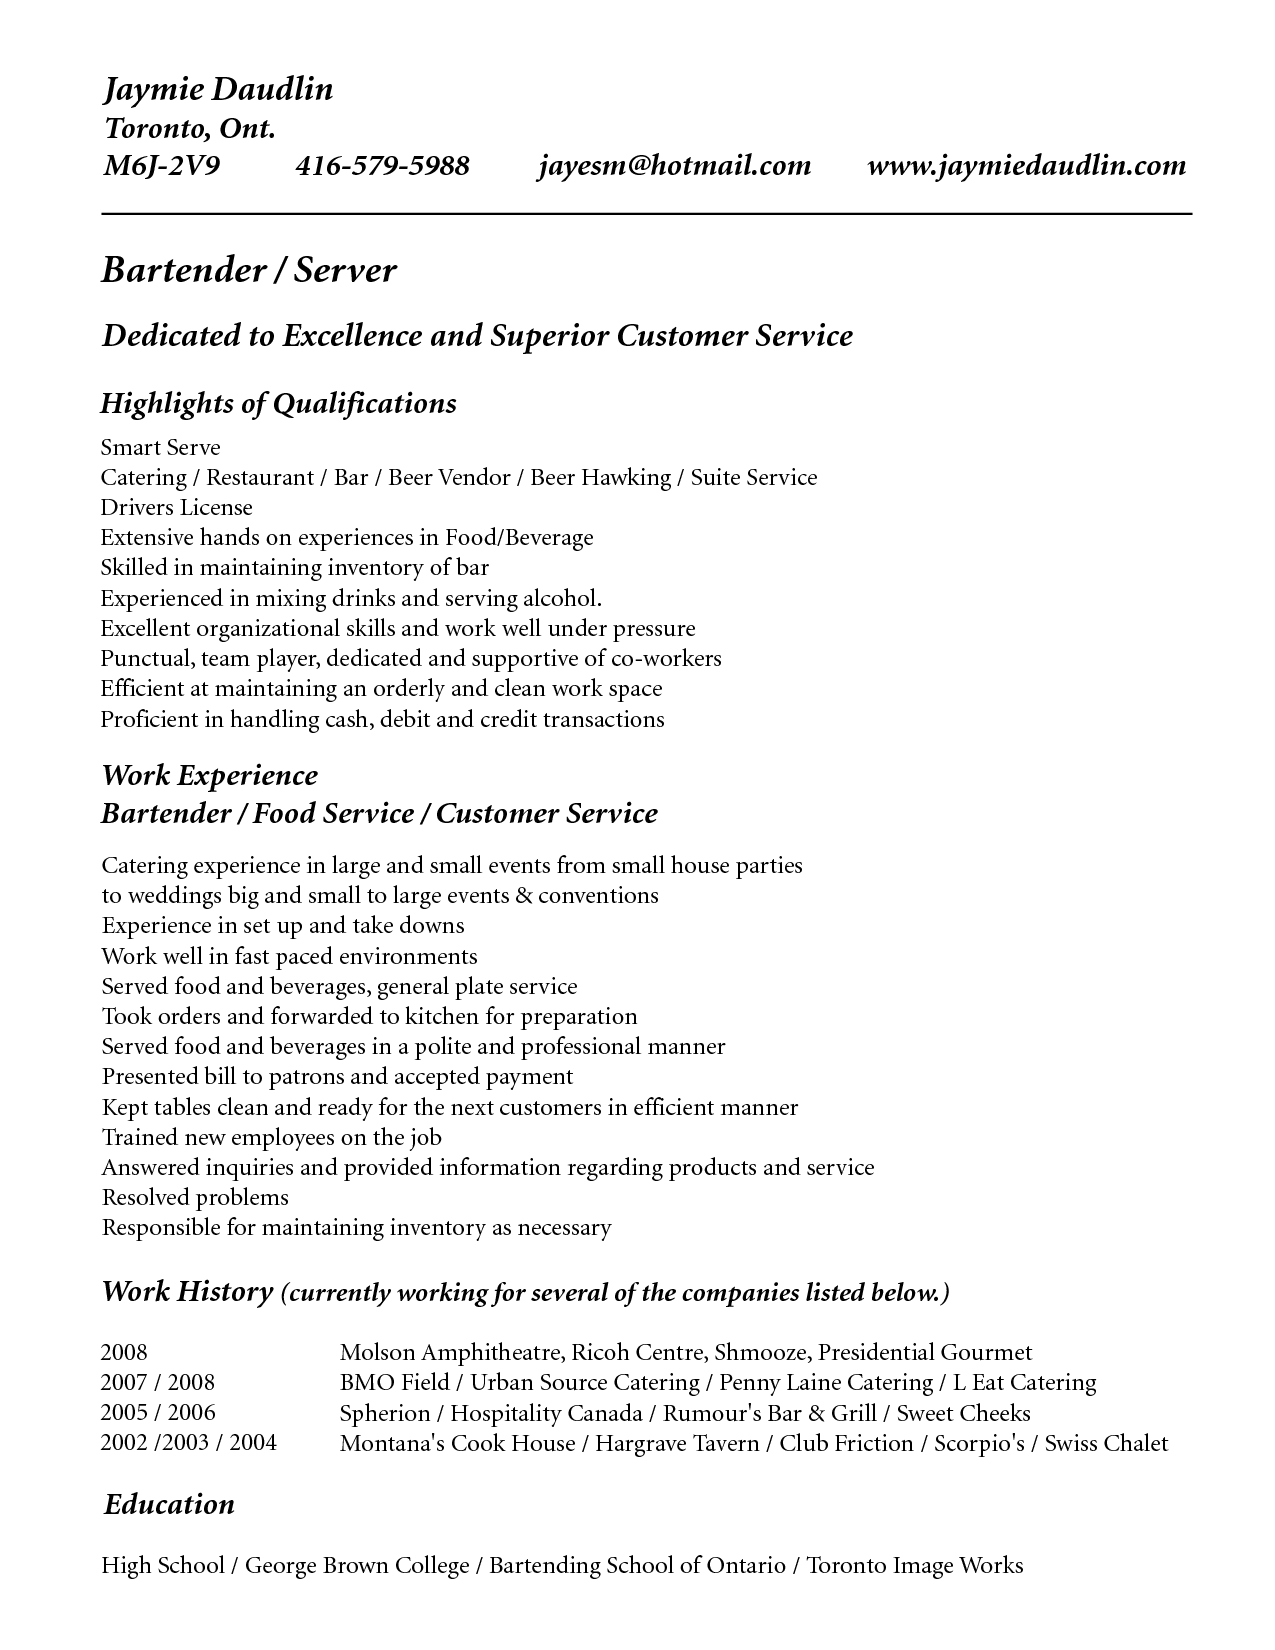 Resume For Bartender Resume Template For Bartender No Experience  Httpwww